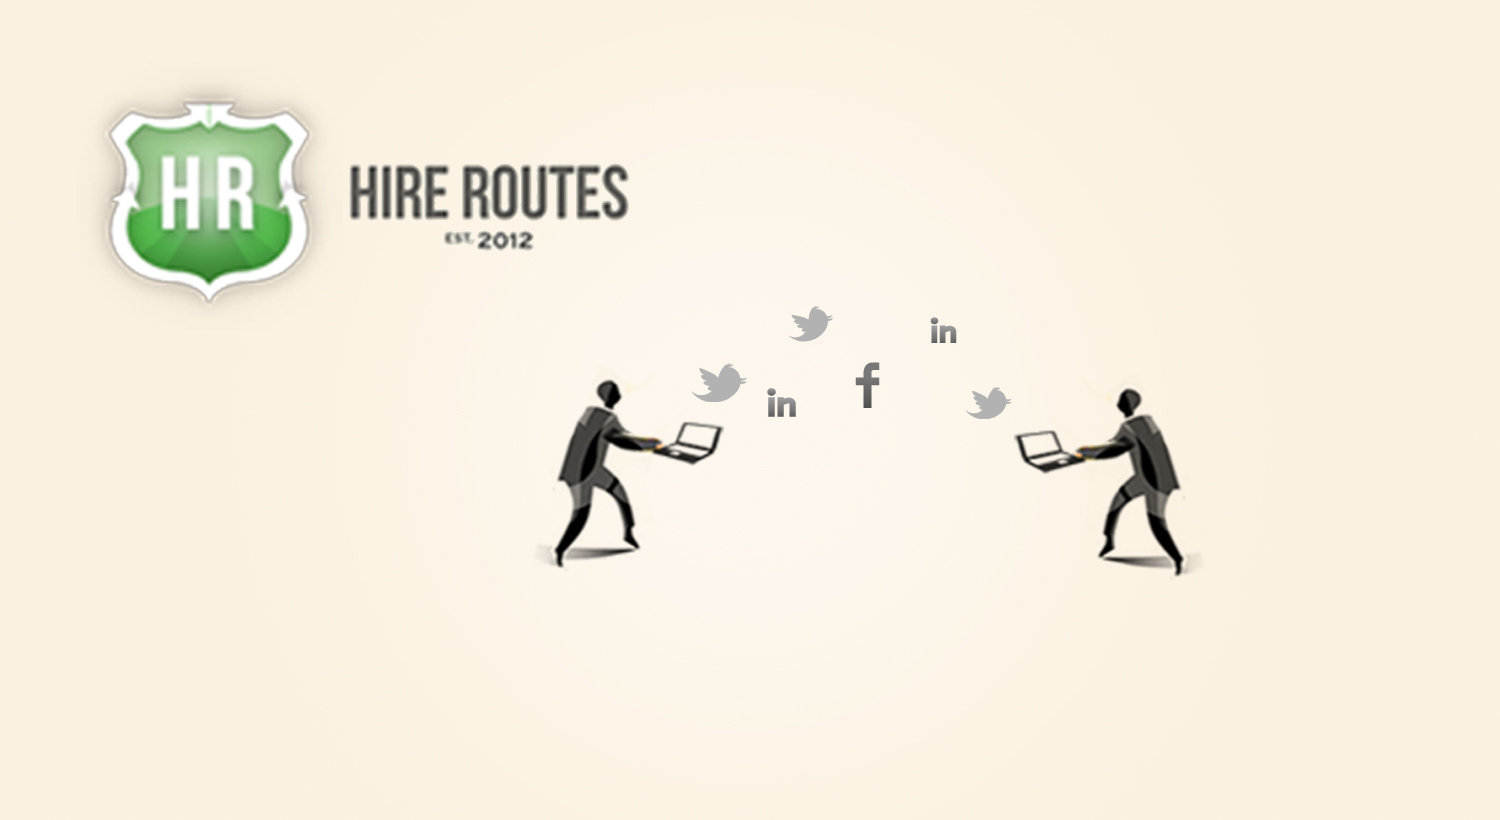 hire-routes3.jpg